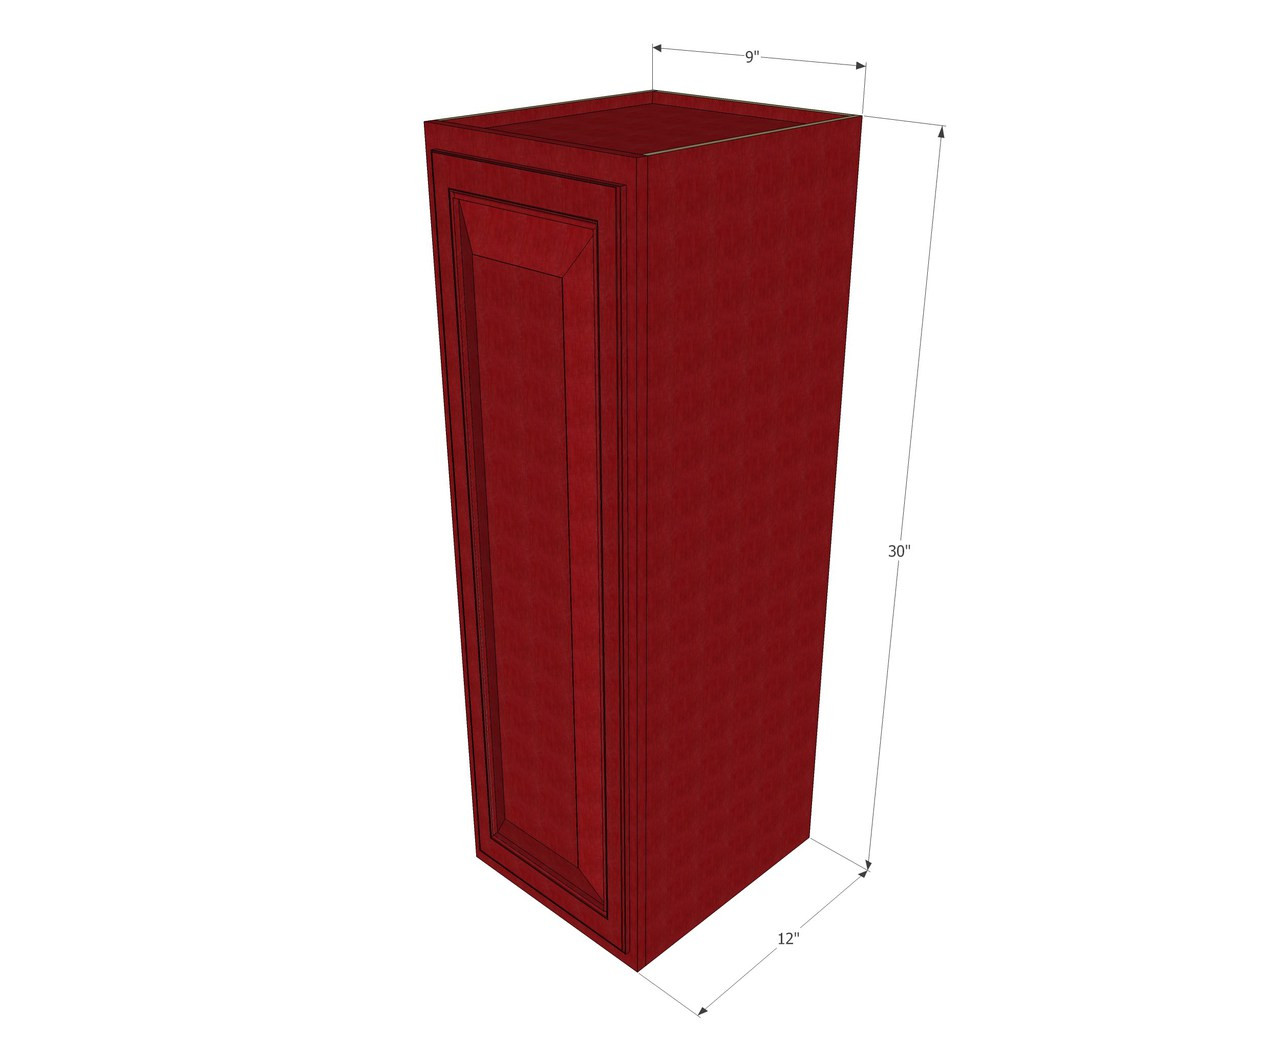 Small Single Door Grand Reserve Cherry Wall Cabinet 9 Inch Wide X 30 Inch High Kitchen